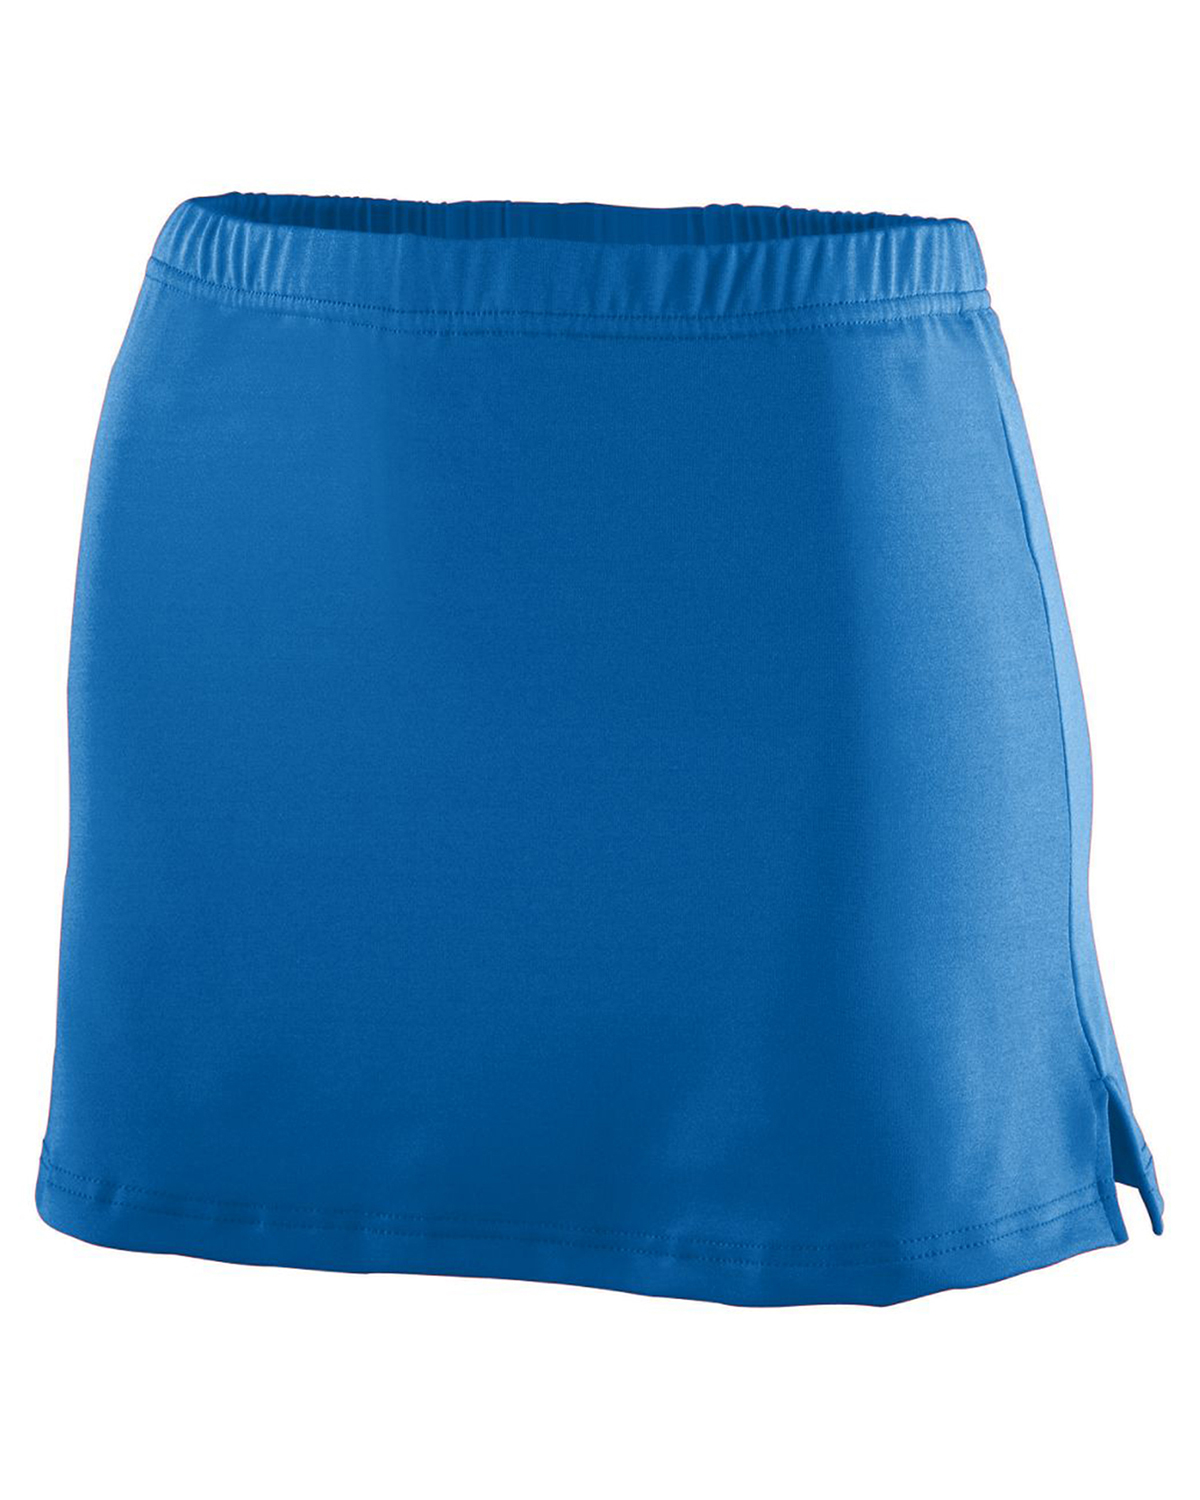 Augusta 752 Girls Poly/Spandex Cheer Team Skort at GotApparel